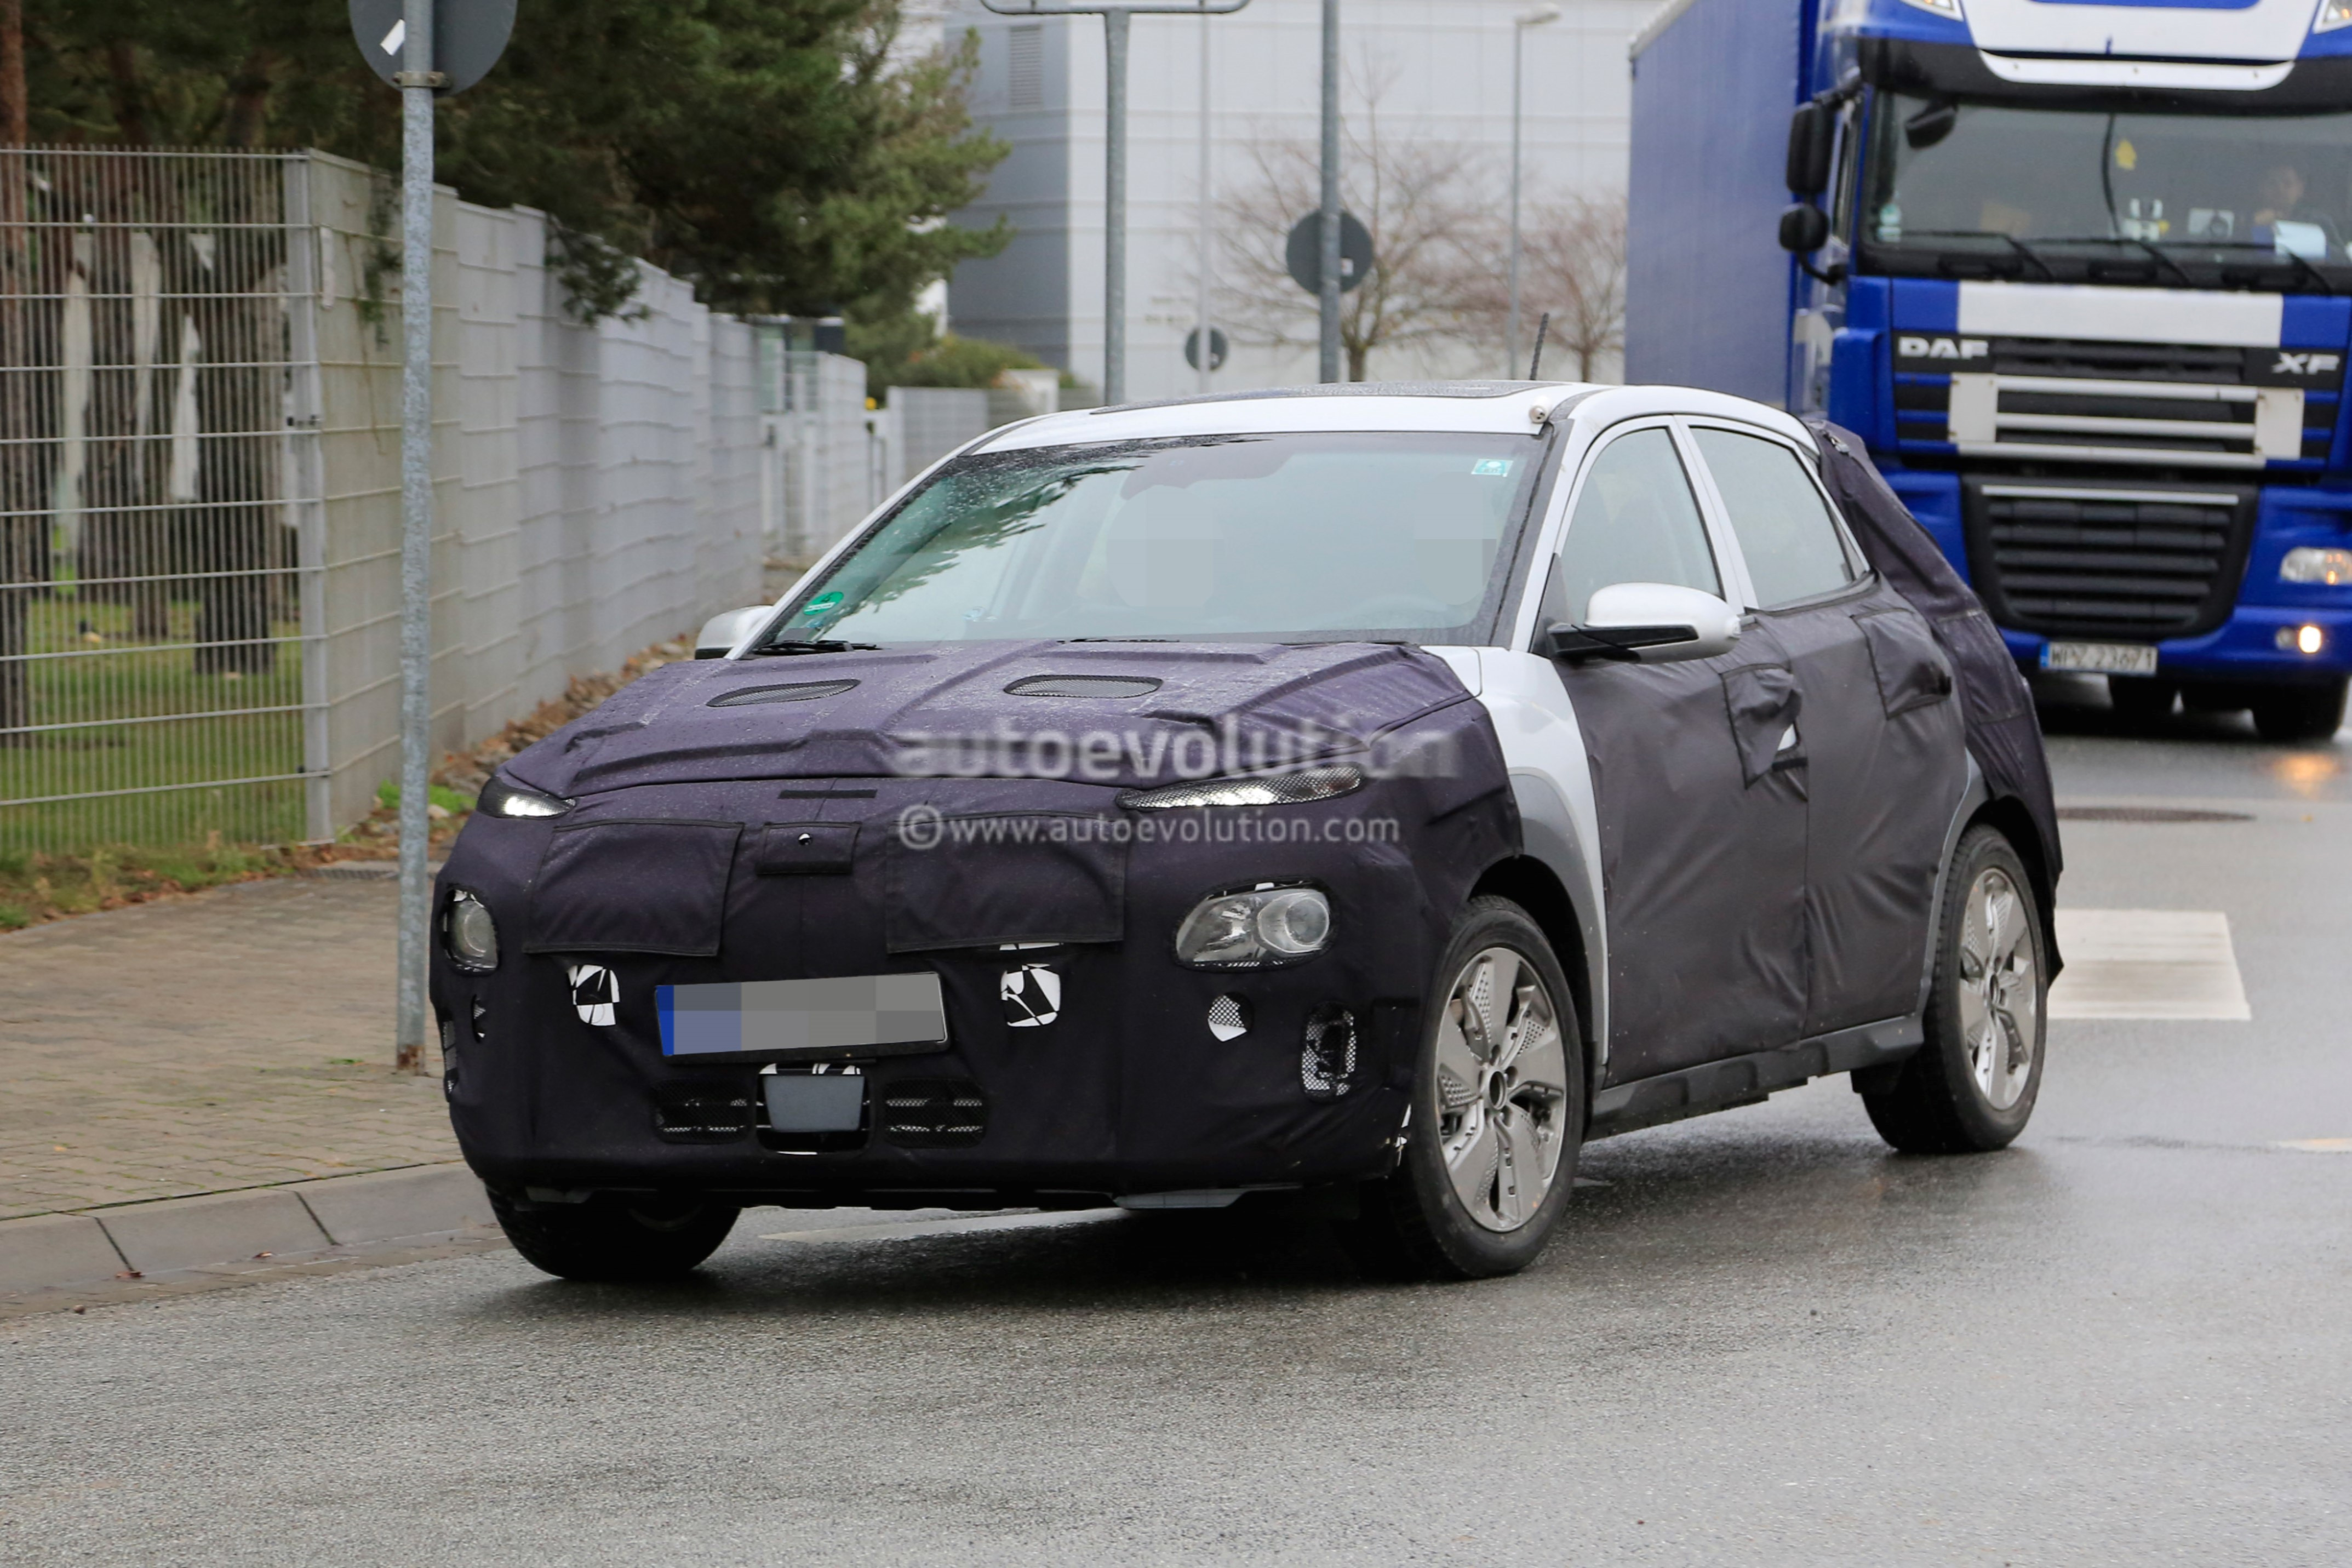 2019 Hyundai Kona Electric Confirmed With Two Battery Options, Pricing Announced - autoevolution